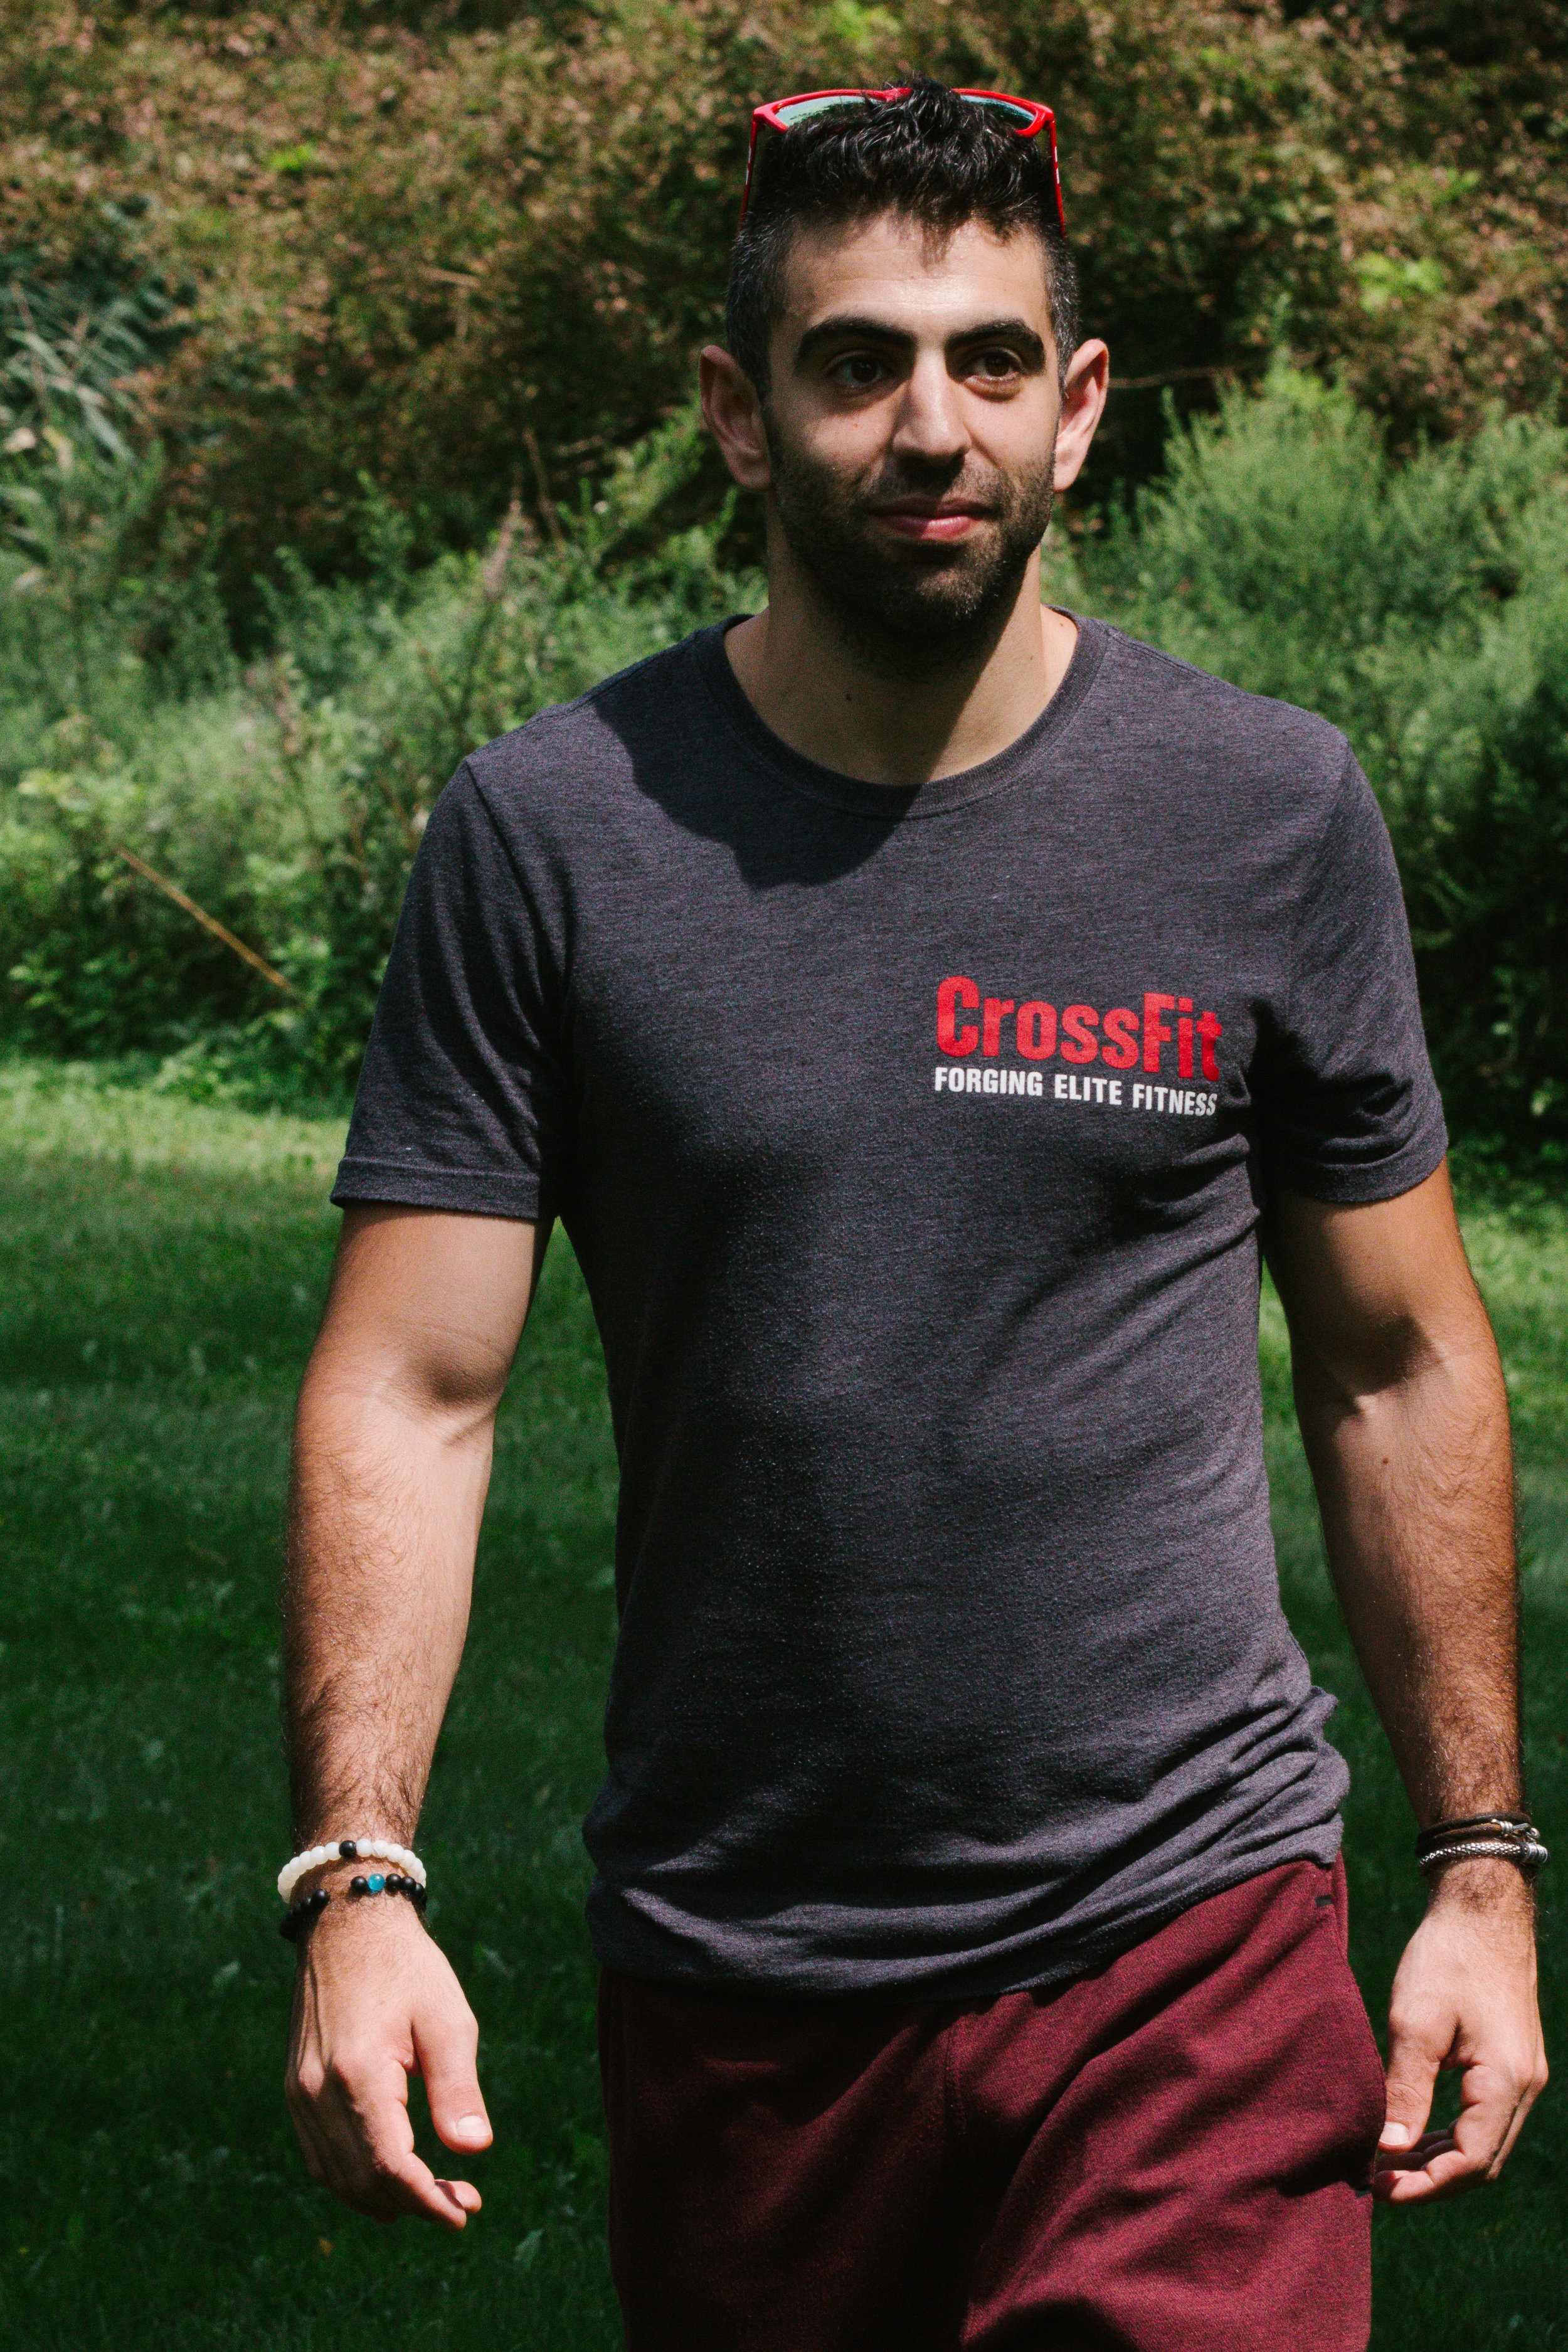 tom-crossfit-coach-2.jpg